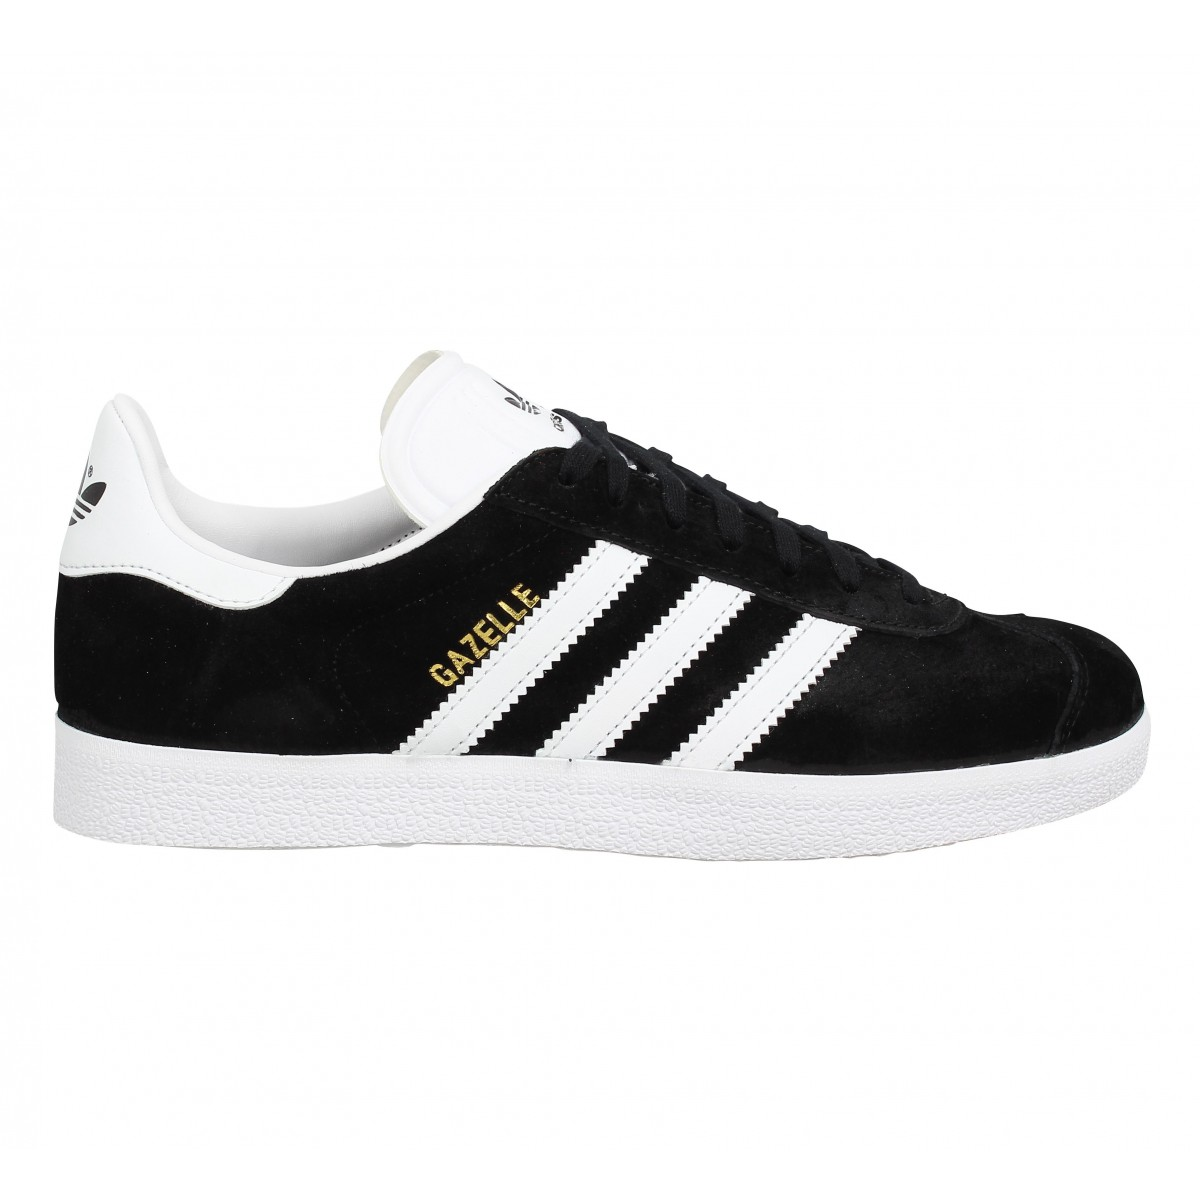 adidas gazelle velours femme noir blanc fanny chaussures. Black Bedroom Furniture Sets. Home Design Ideas